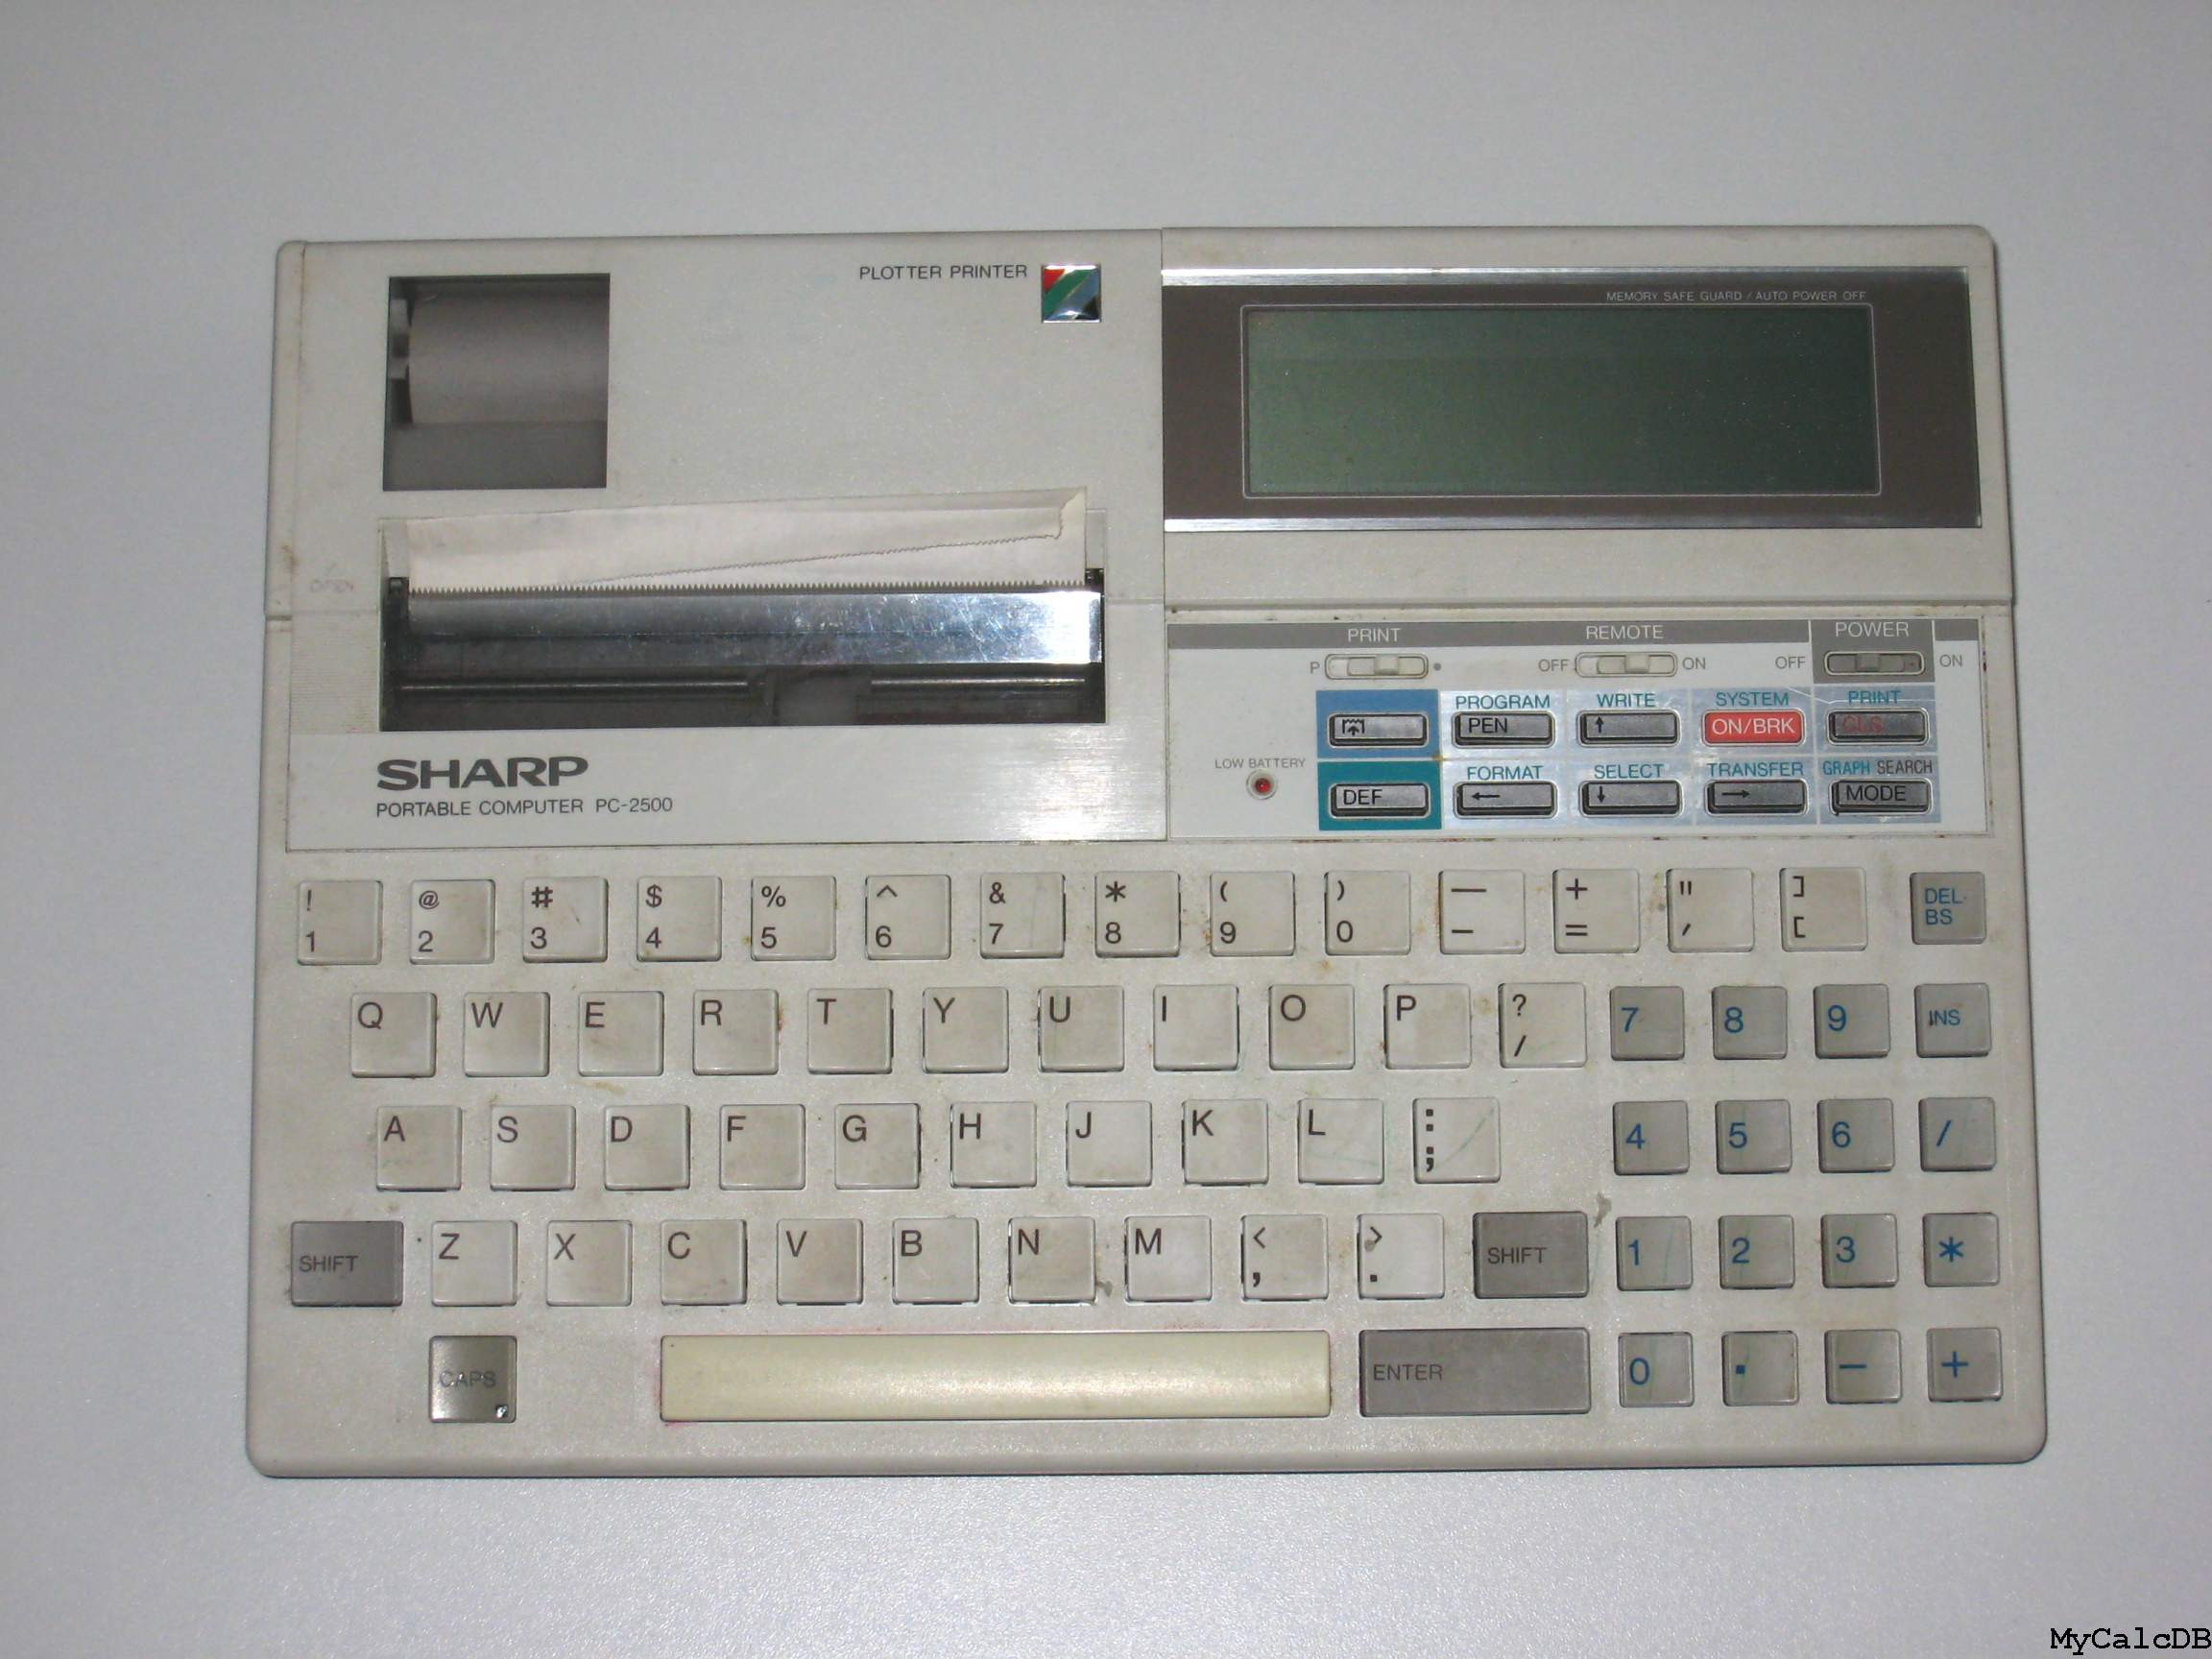 Sharp PC-2500